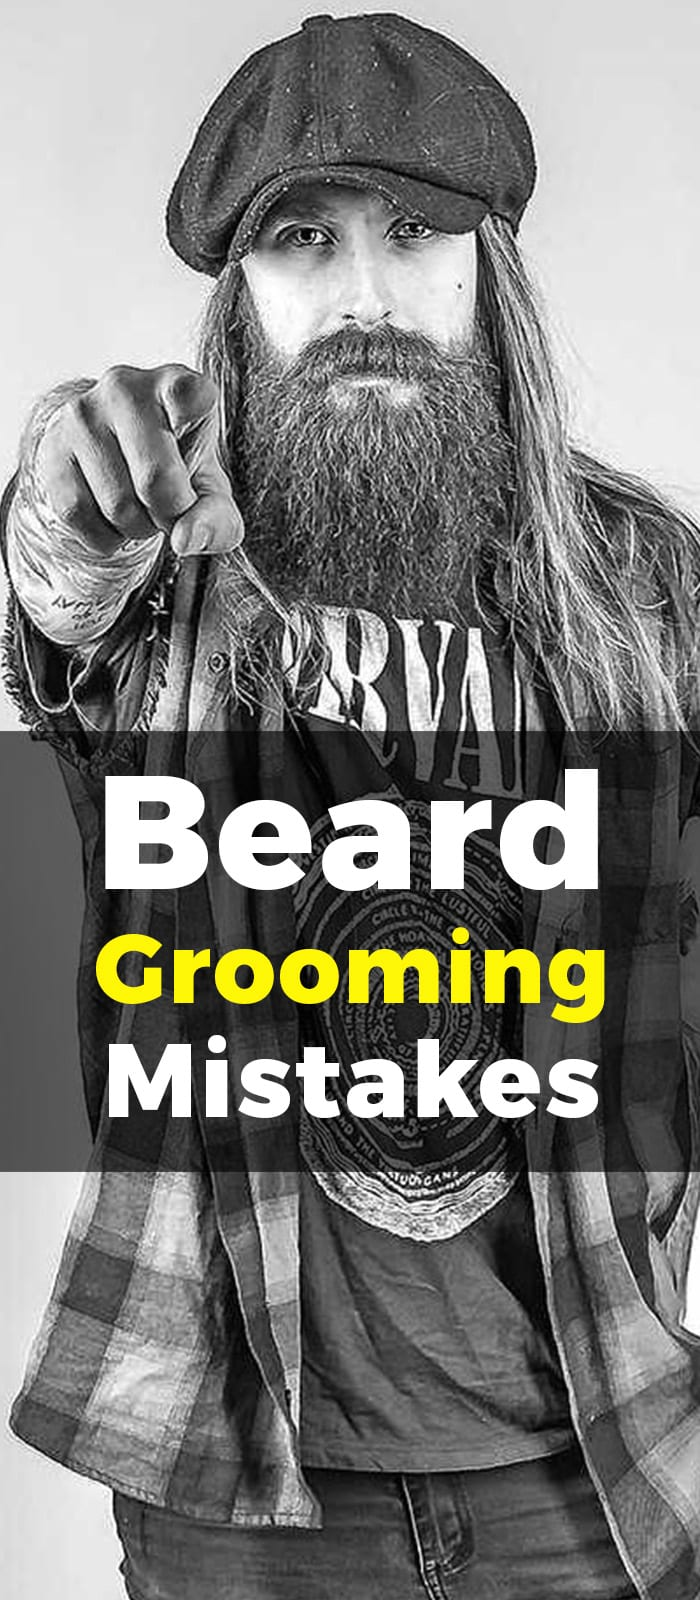 Beard Growing Mistakes.